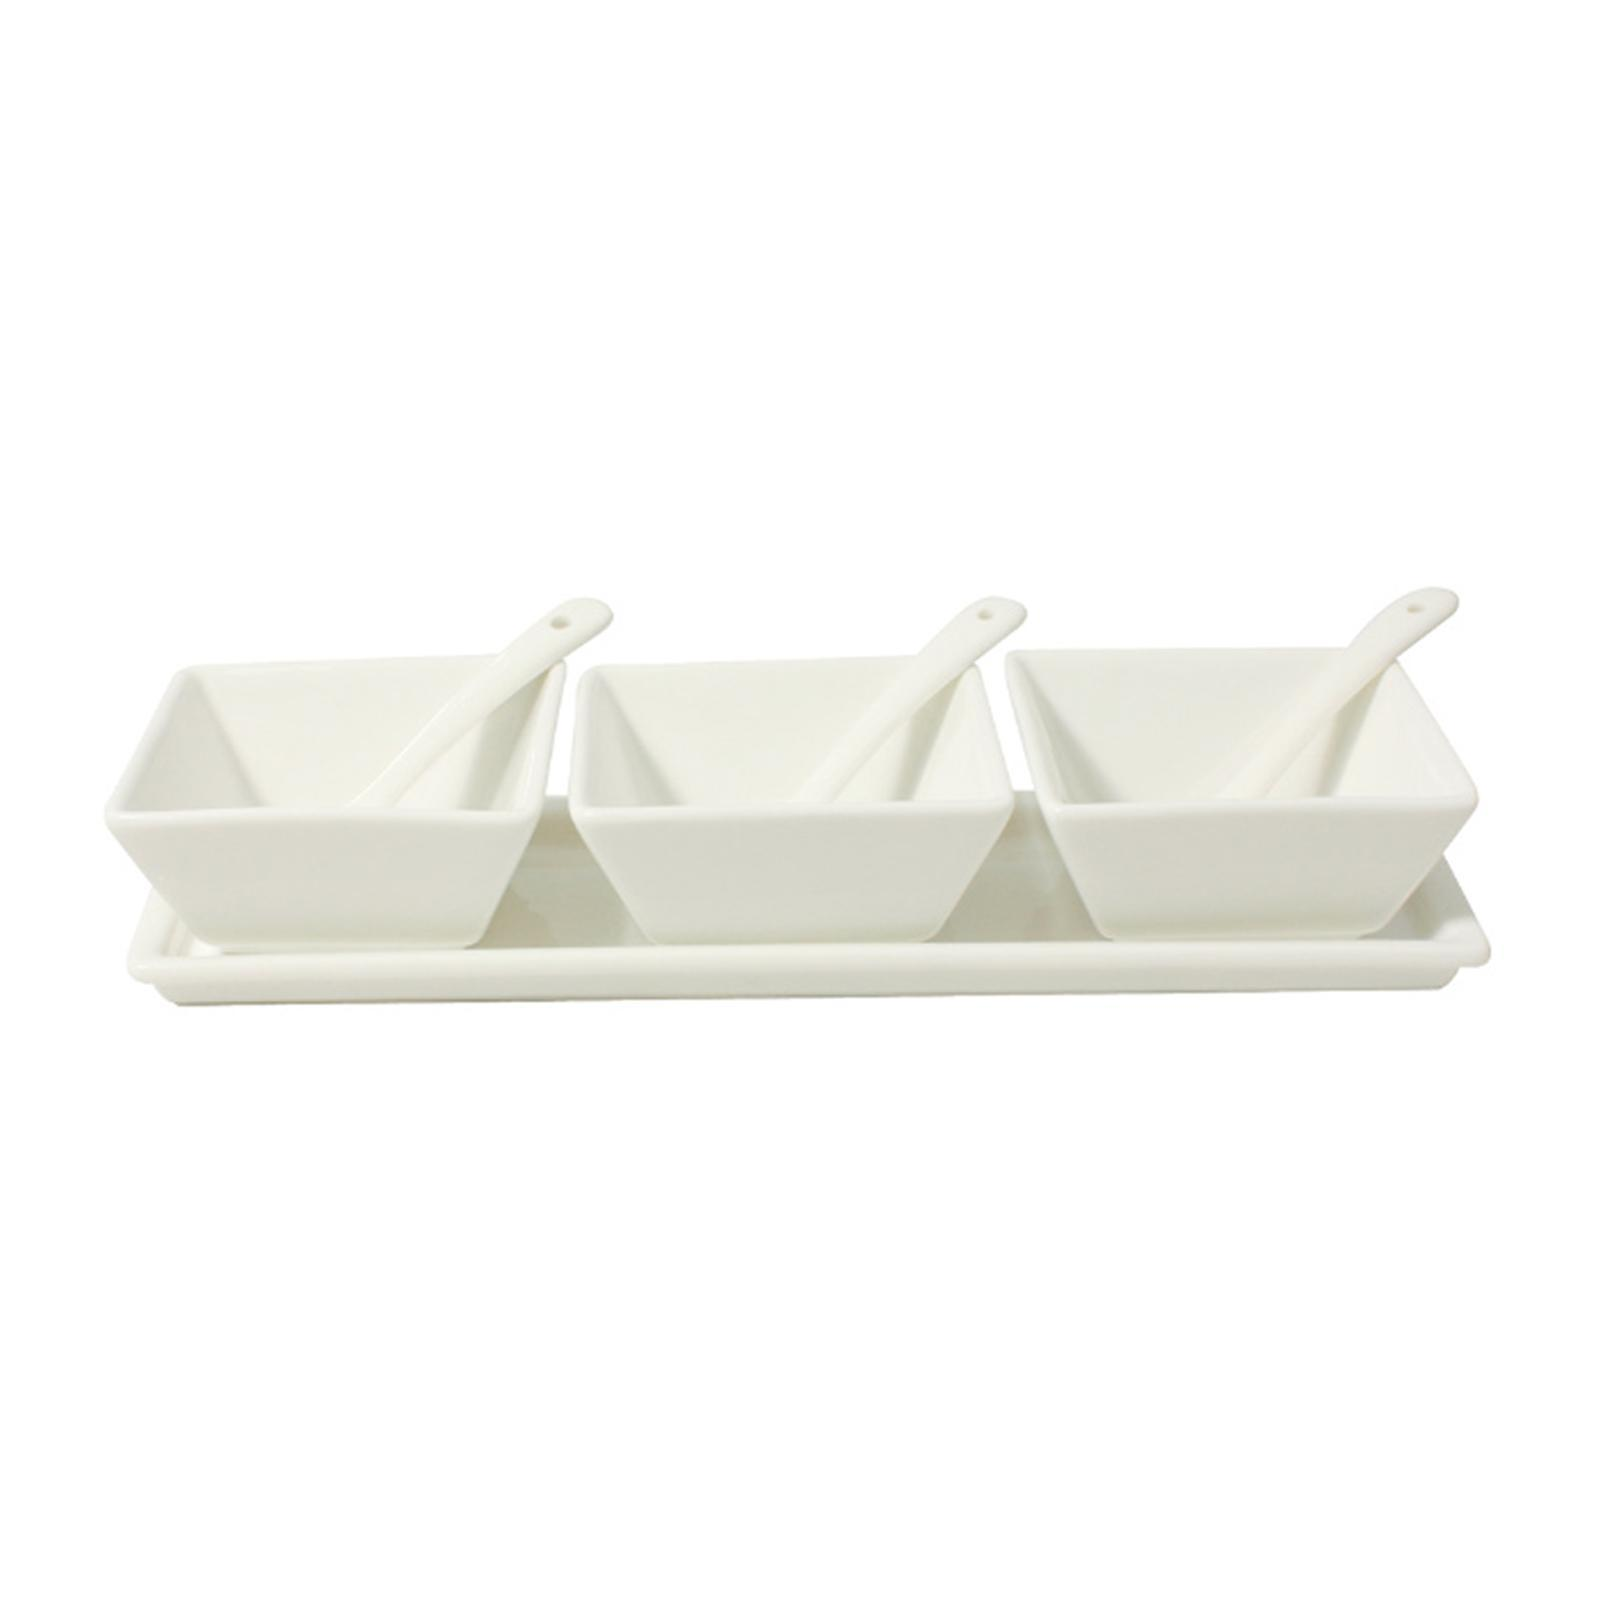 Cerabon Essentials Porcelain 7-Pieces Condiment Set With Tray 3 Square Bowls And 3 Spoons L253 x W81 x H50MM - By ToTT